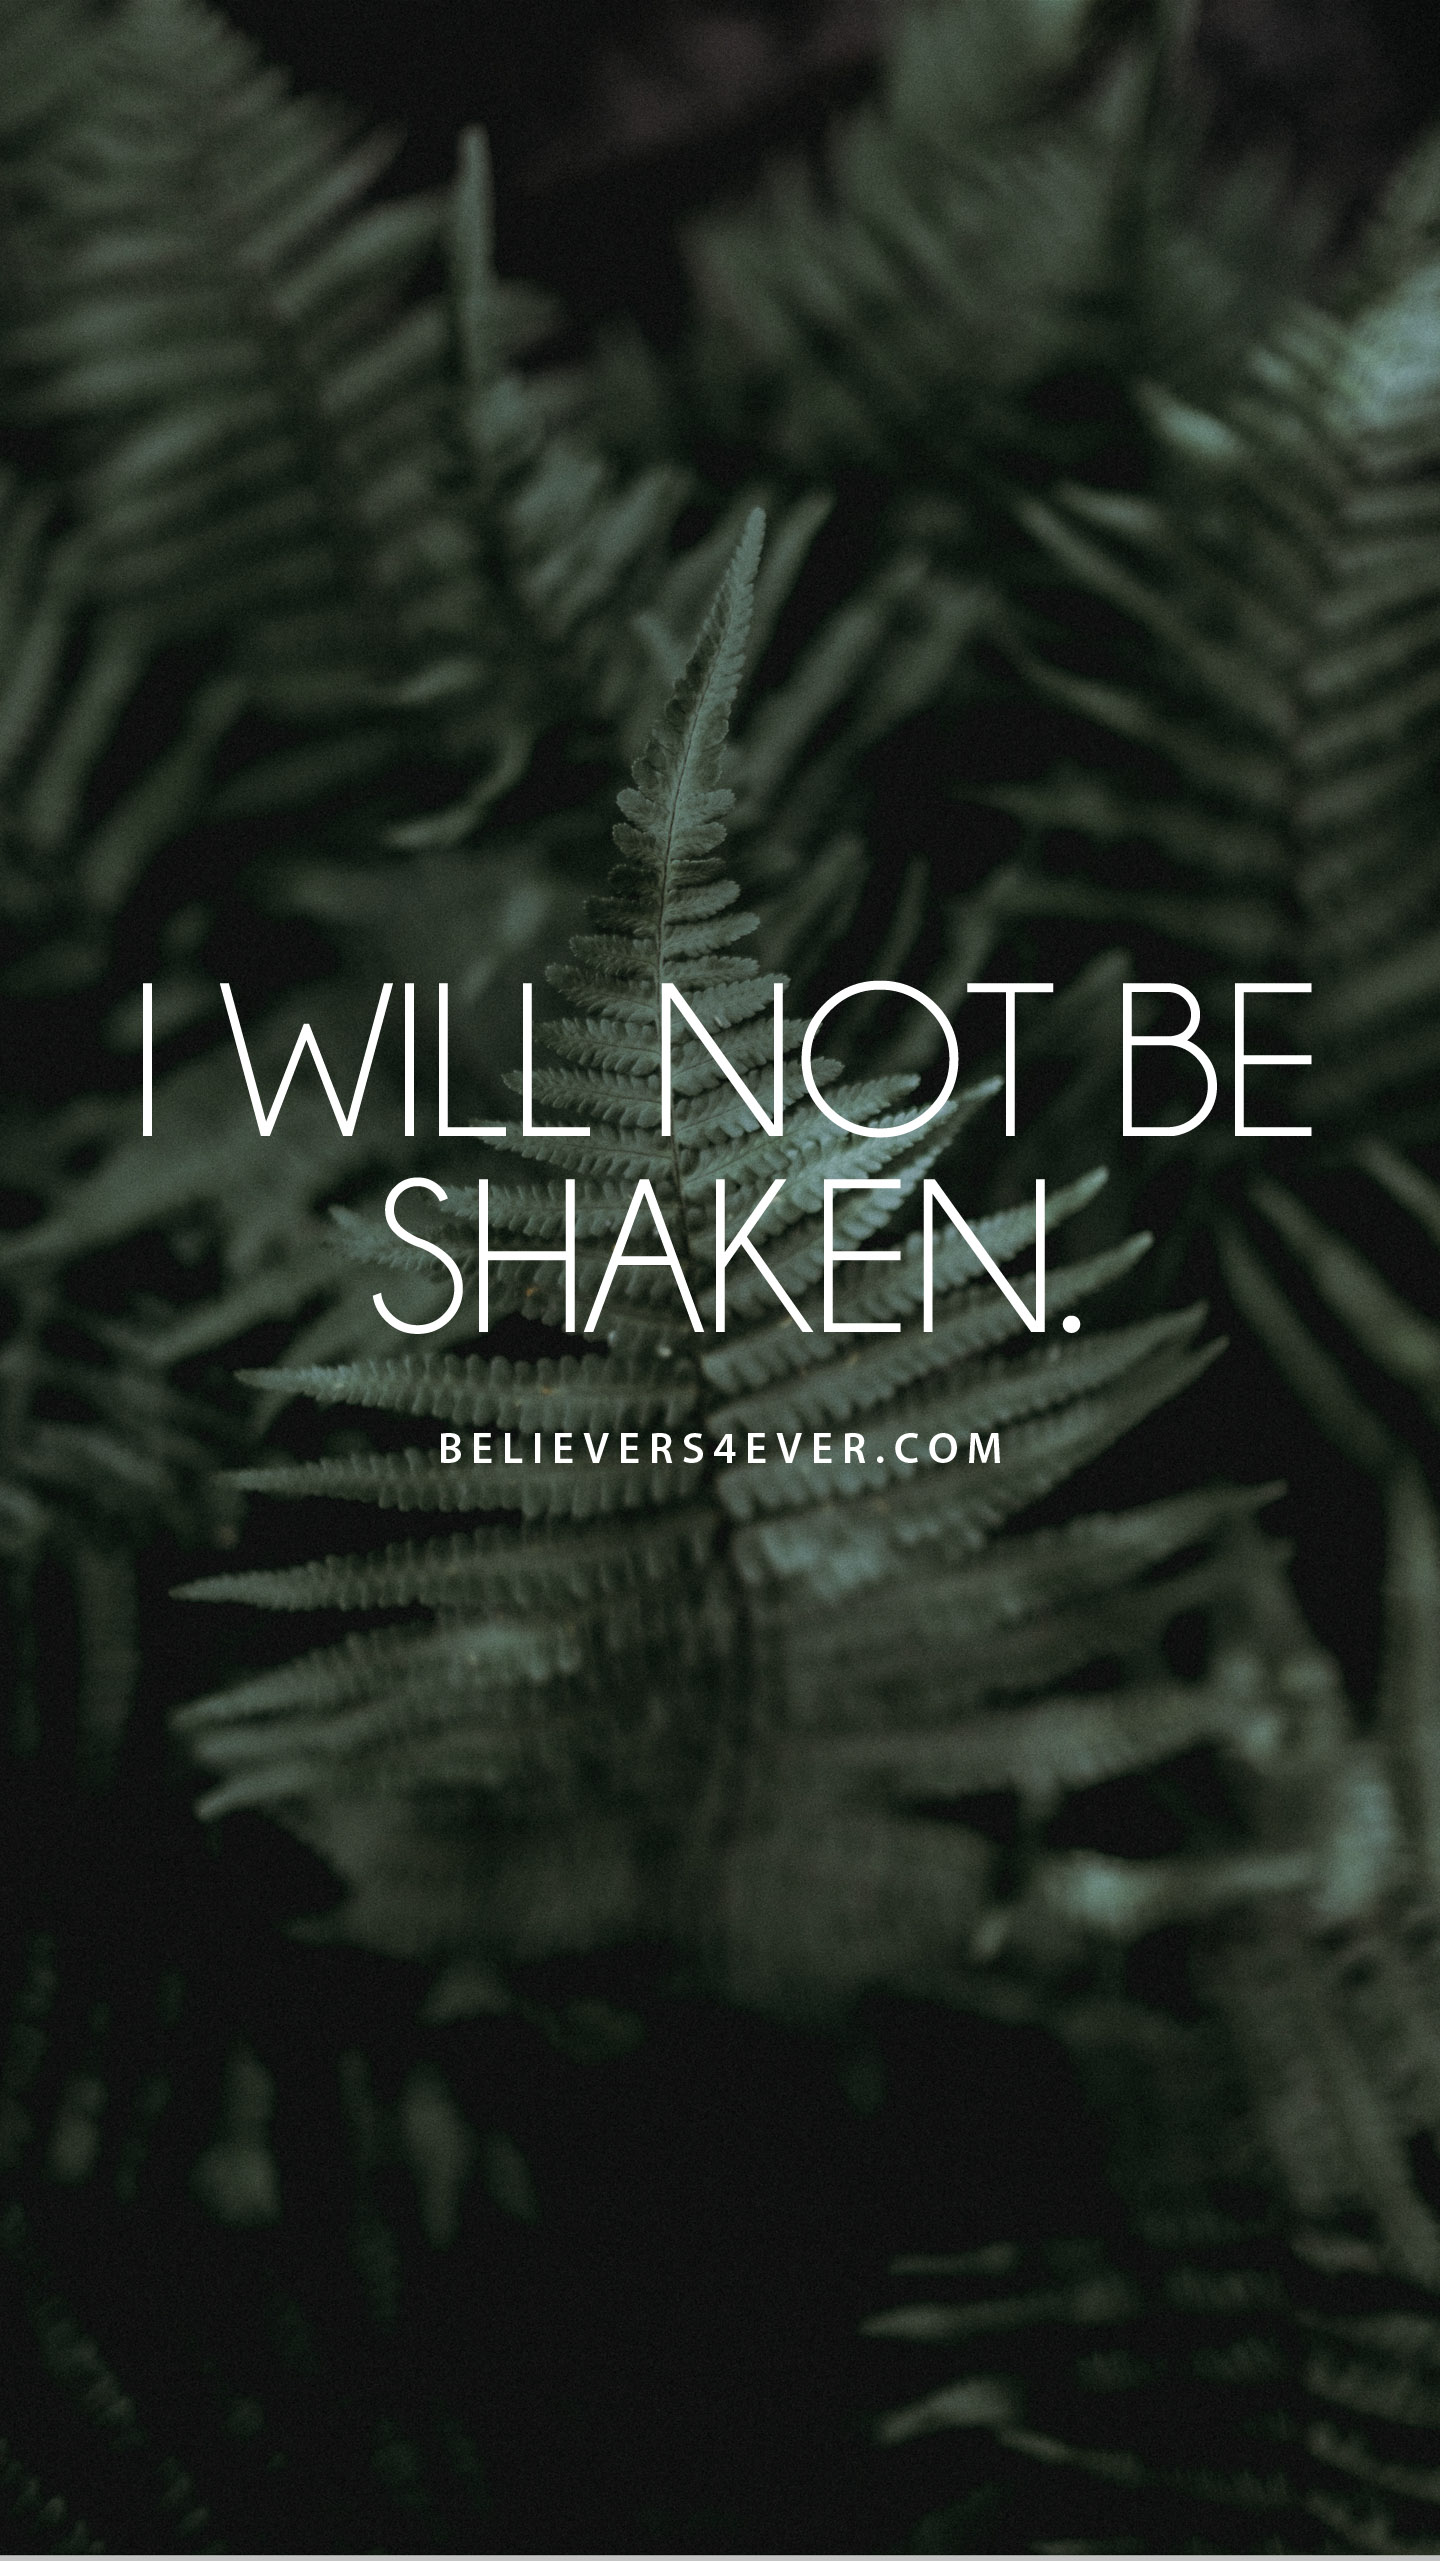 Samsung Galaxy S3 Wallpaper Quotes I Will Not Be Shaken Believers4ever Com